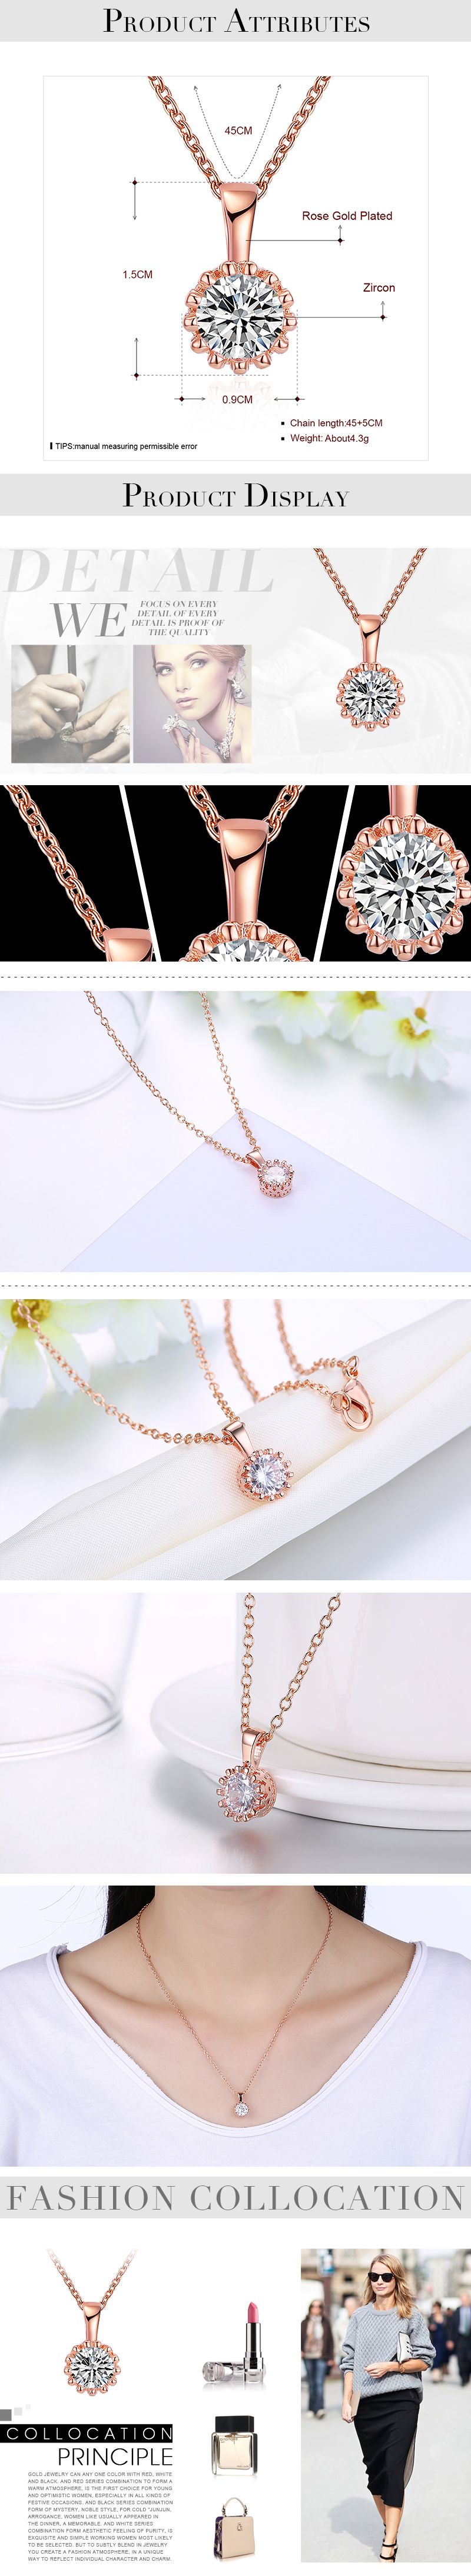 Rose Alloy  Fashionable K alloy fashionable necklace zircon plated rose alloy women necklace crossborder special offer NHKL12587